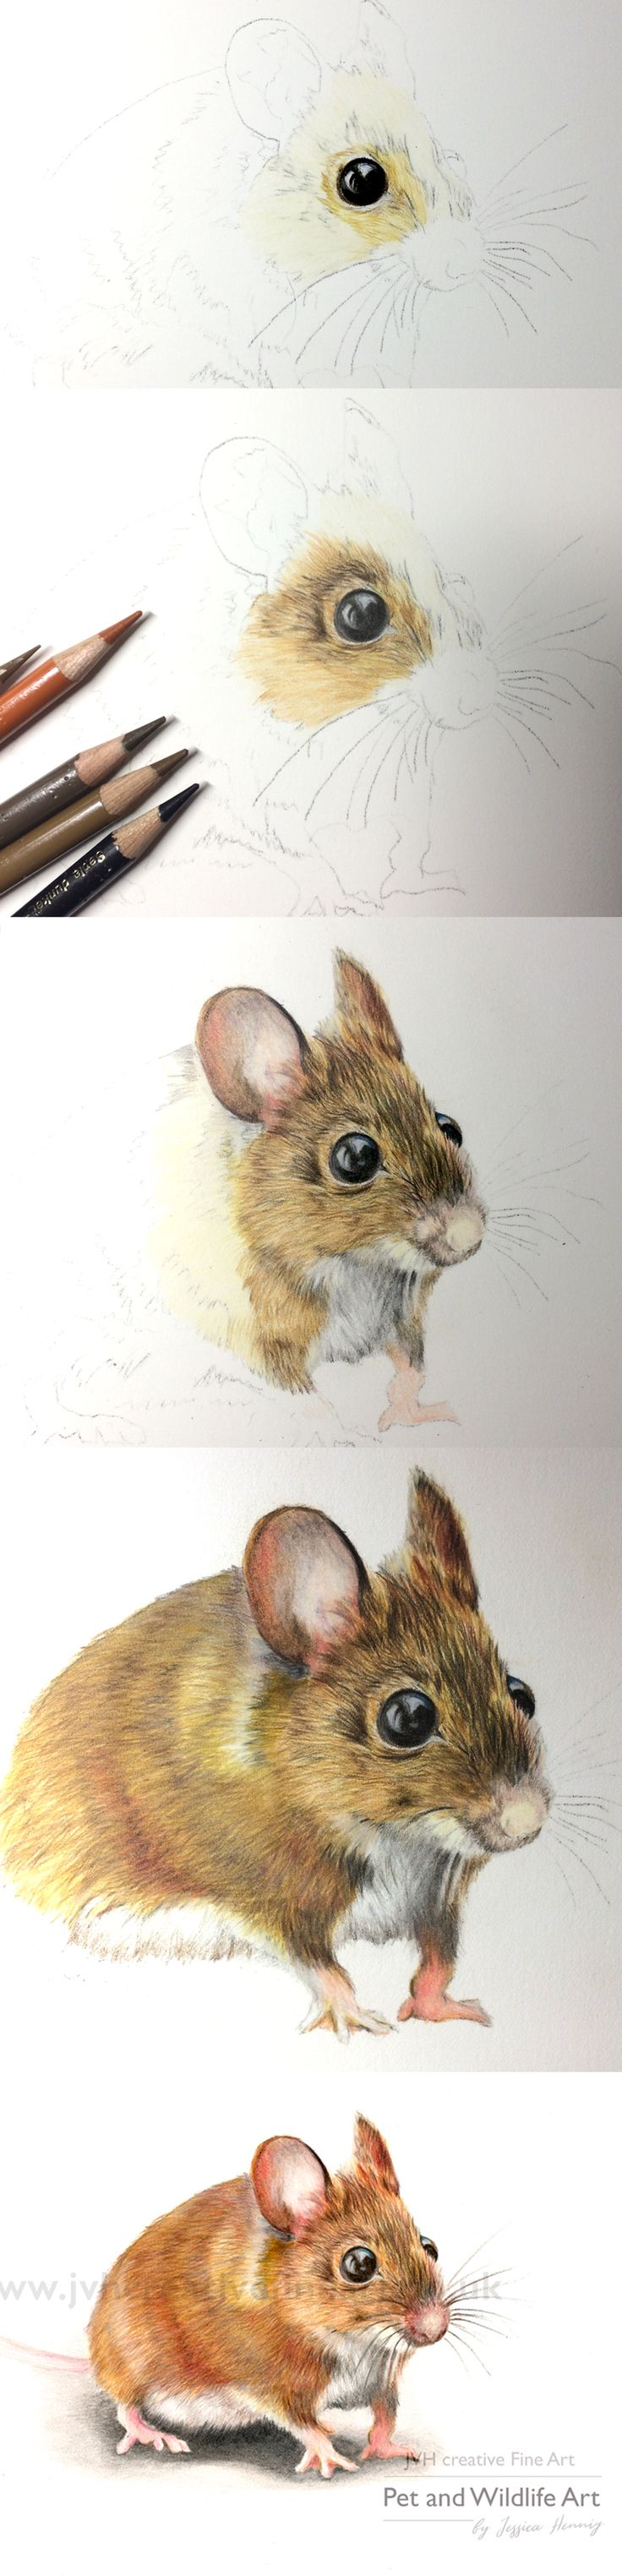 Coloured pencil drawing of a field mouse. Step by step collage by JVH creative Fine Art - Pet and Wildlife Art. Tina the fieldmouse is available as a limited print edition from my website.